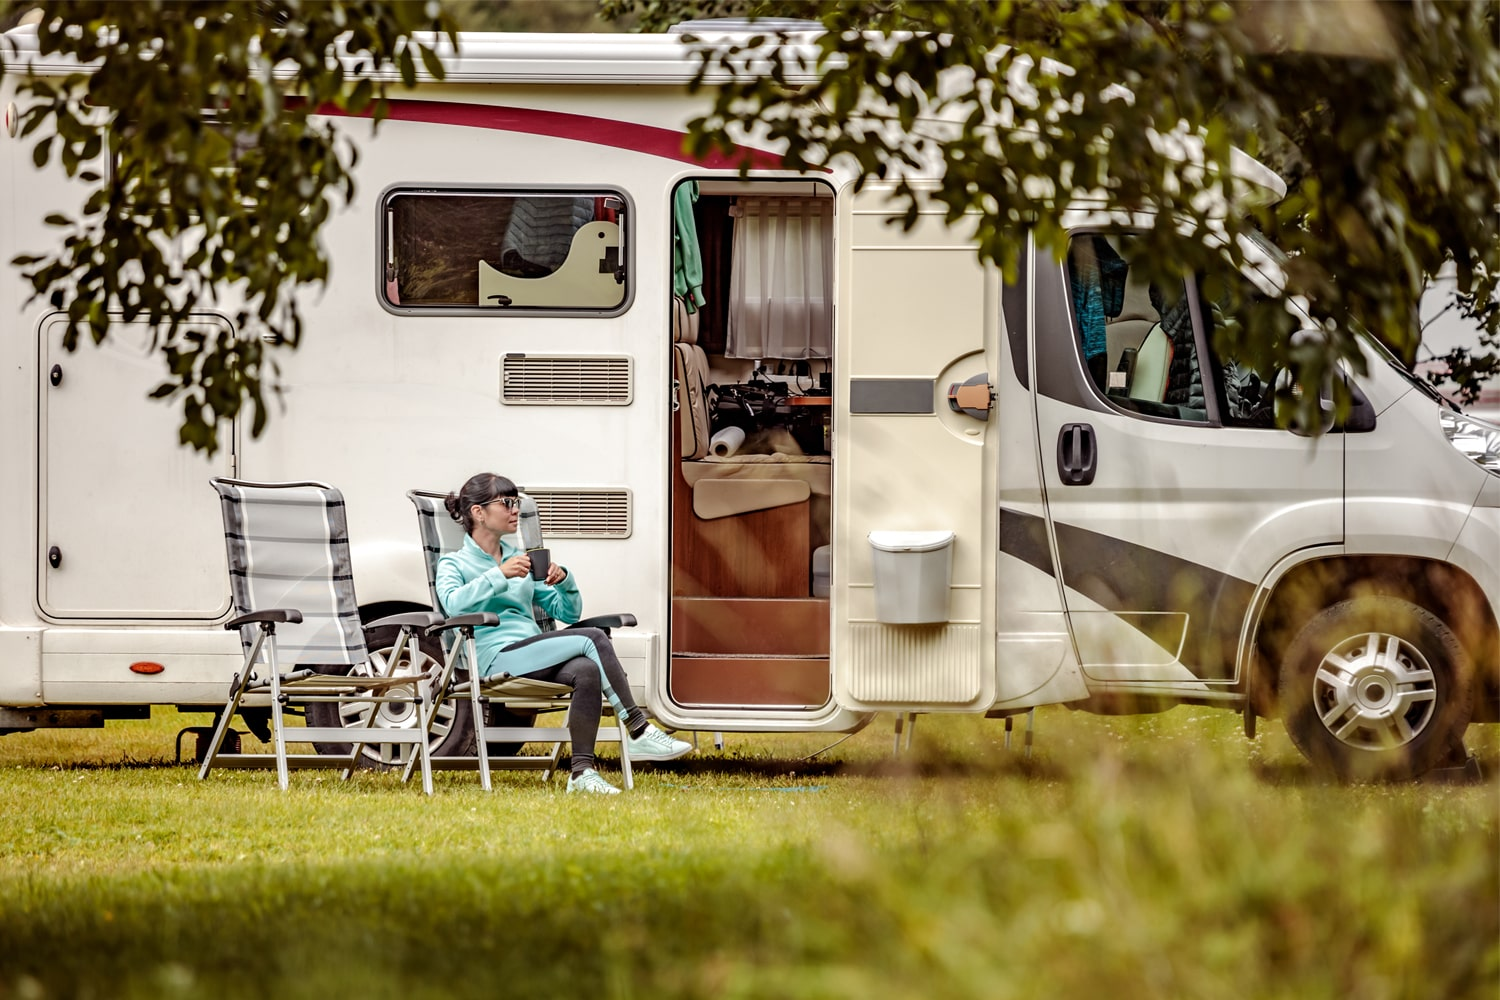 woman relaxing in front of RV